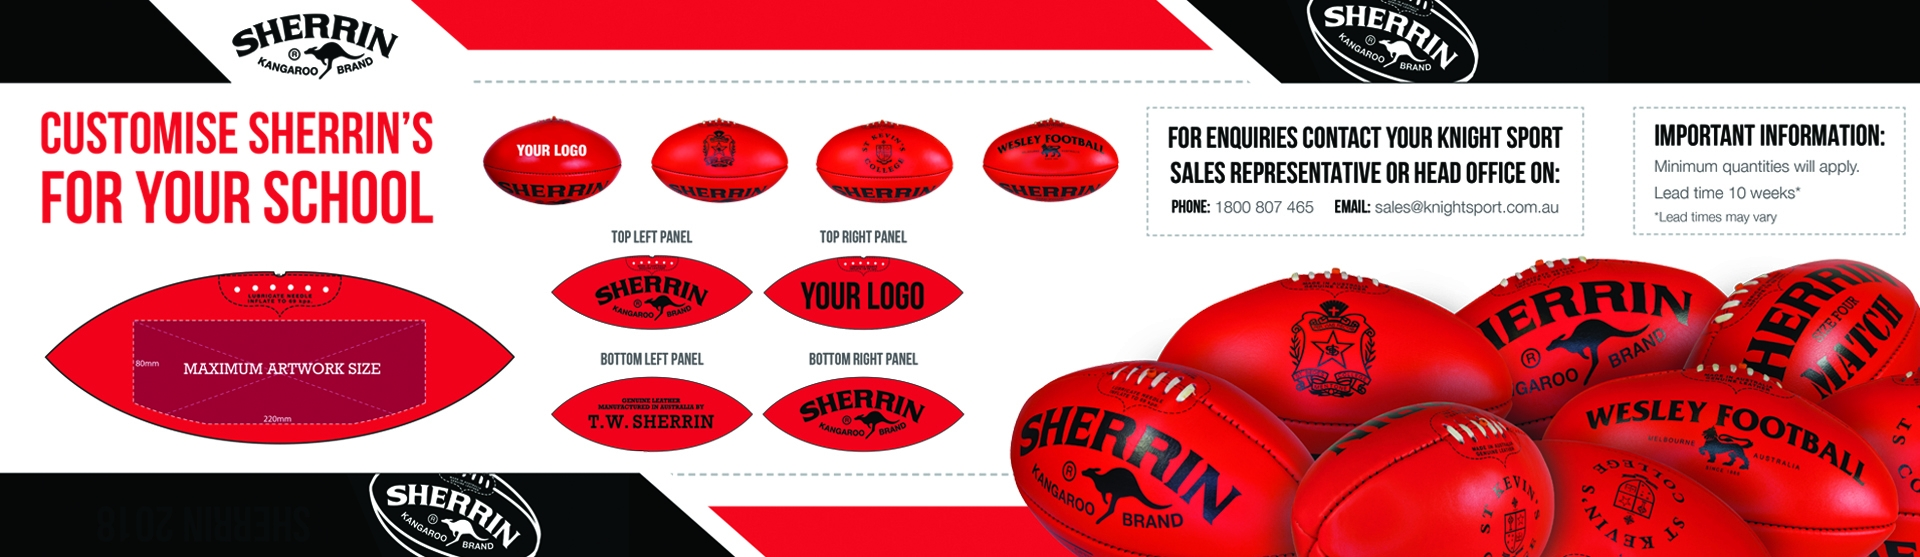 Sherrin Customized